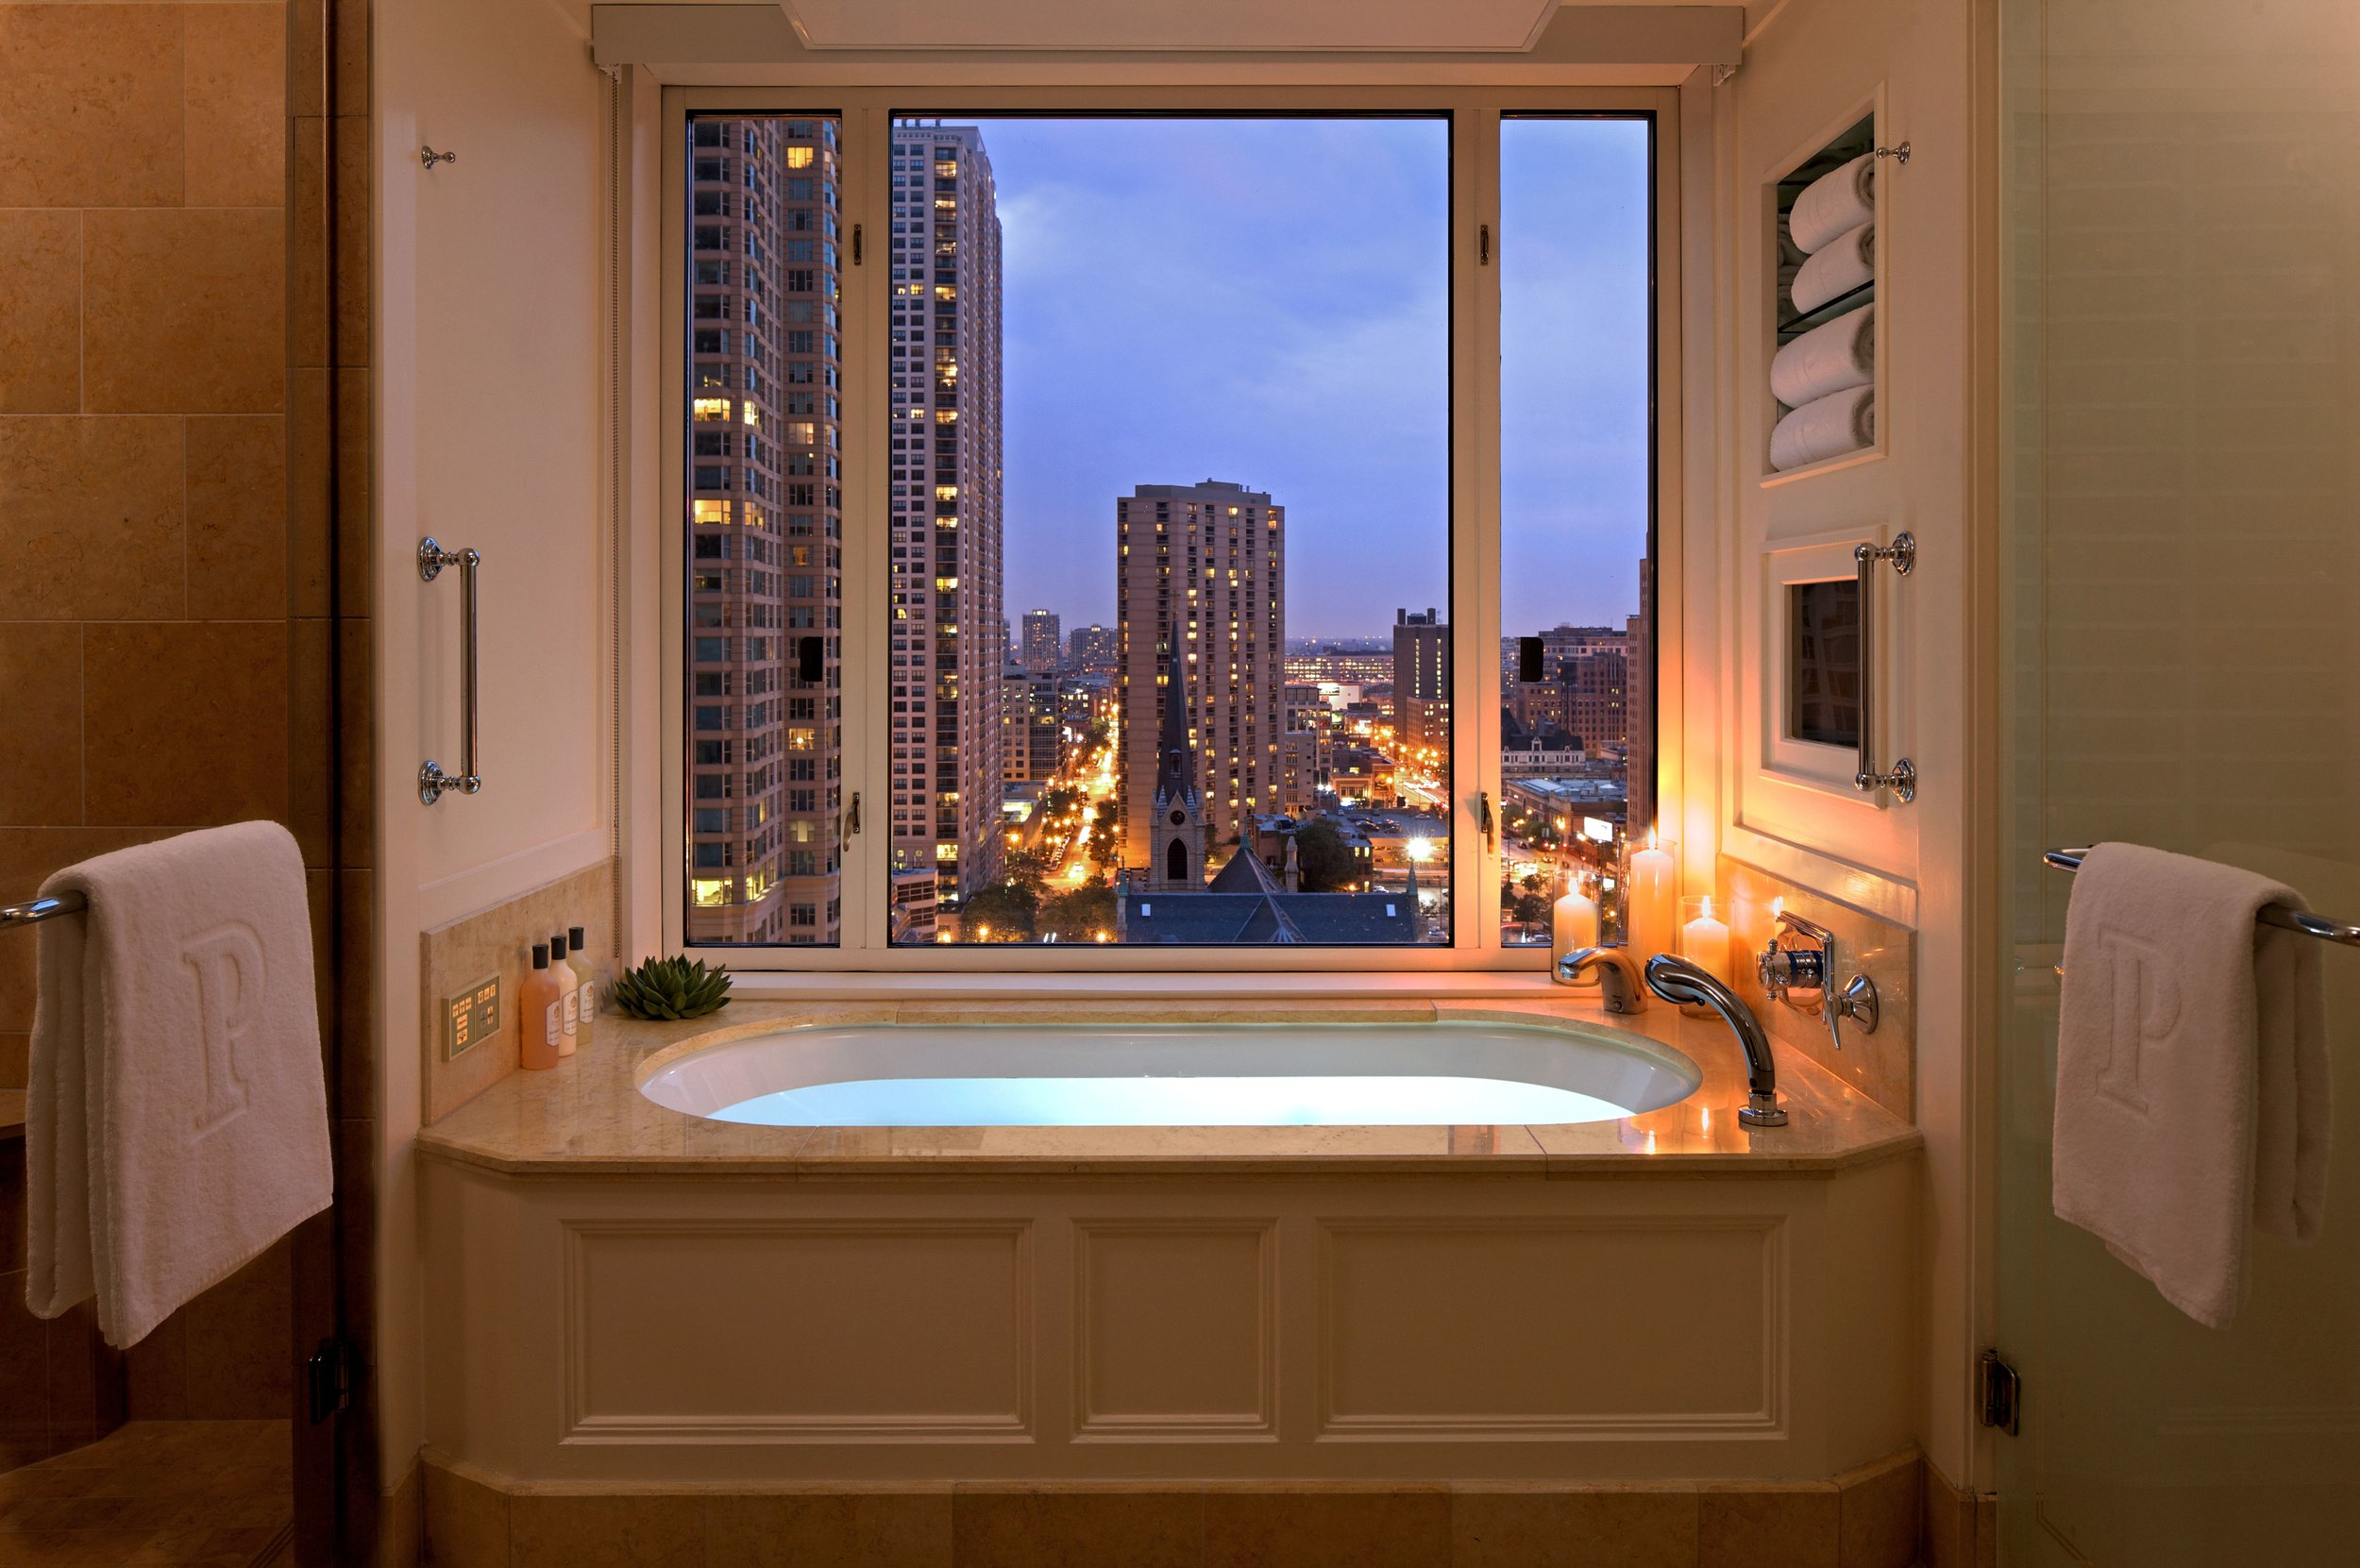 A view from a bathroom inside an executive suite at The Peninsula Chicago.